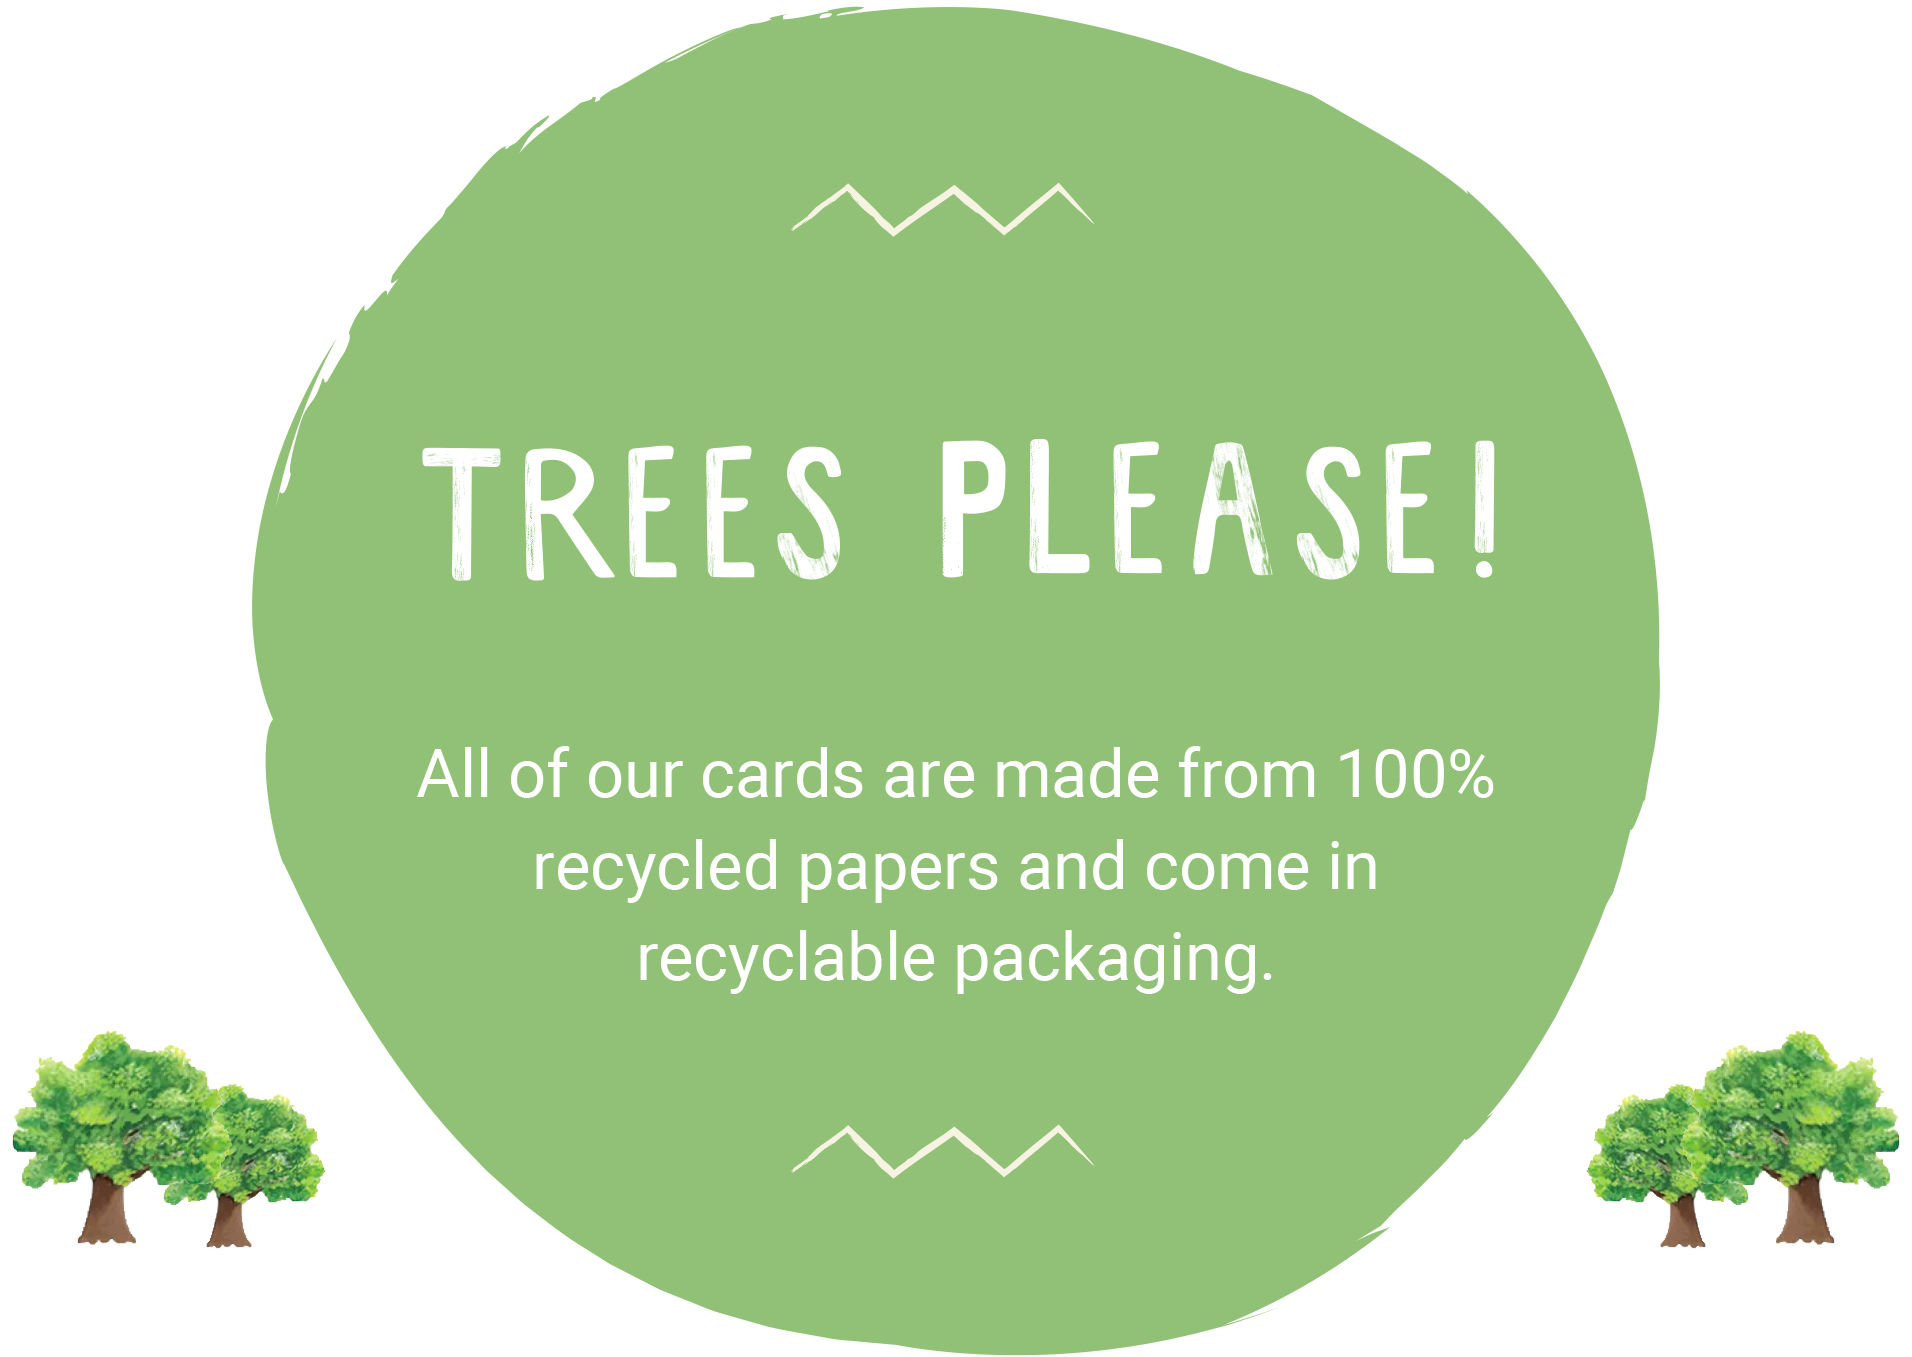 All of our cards are made from 100% recycled papers and come in recyclable packaging.